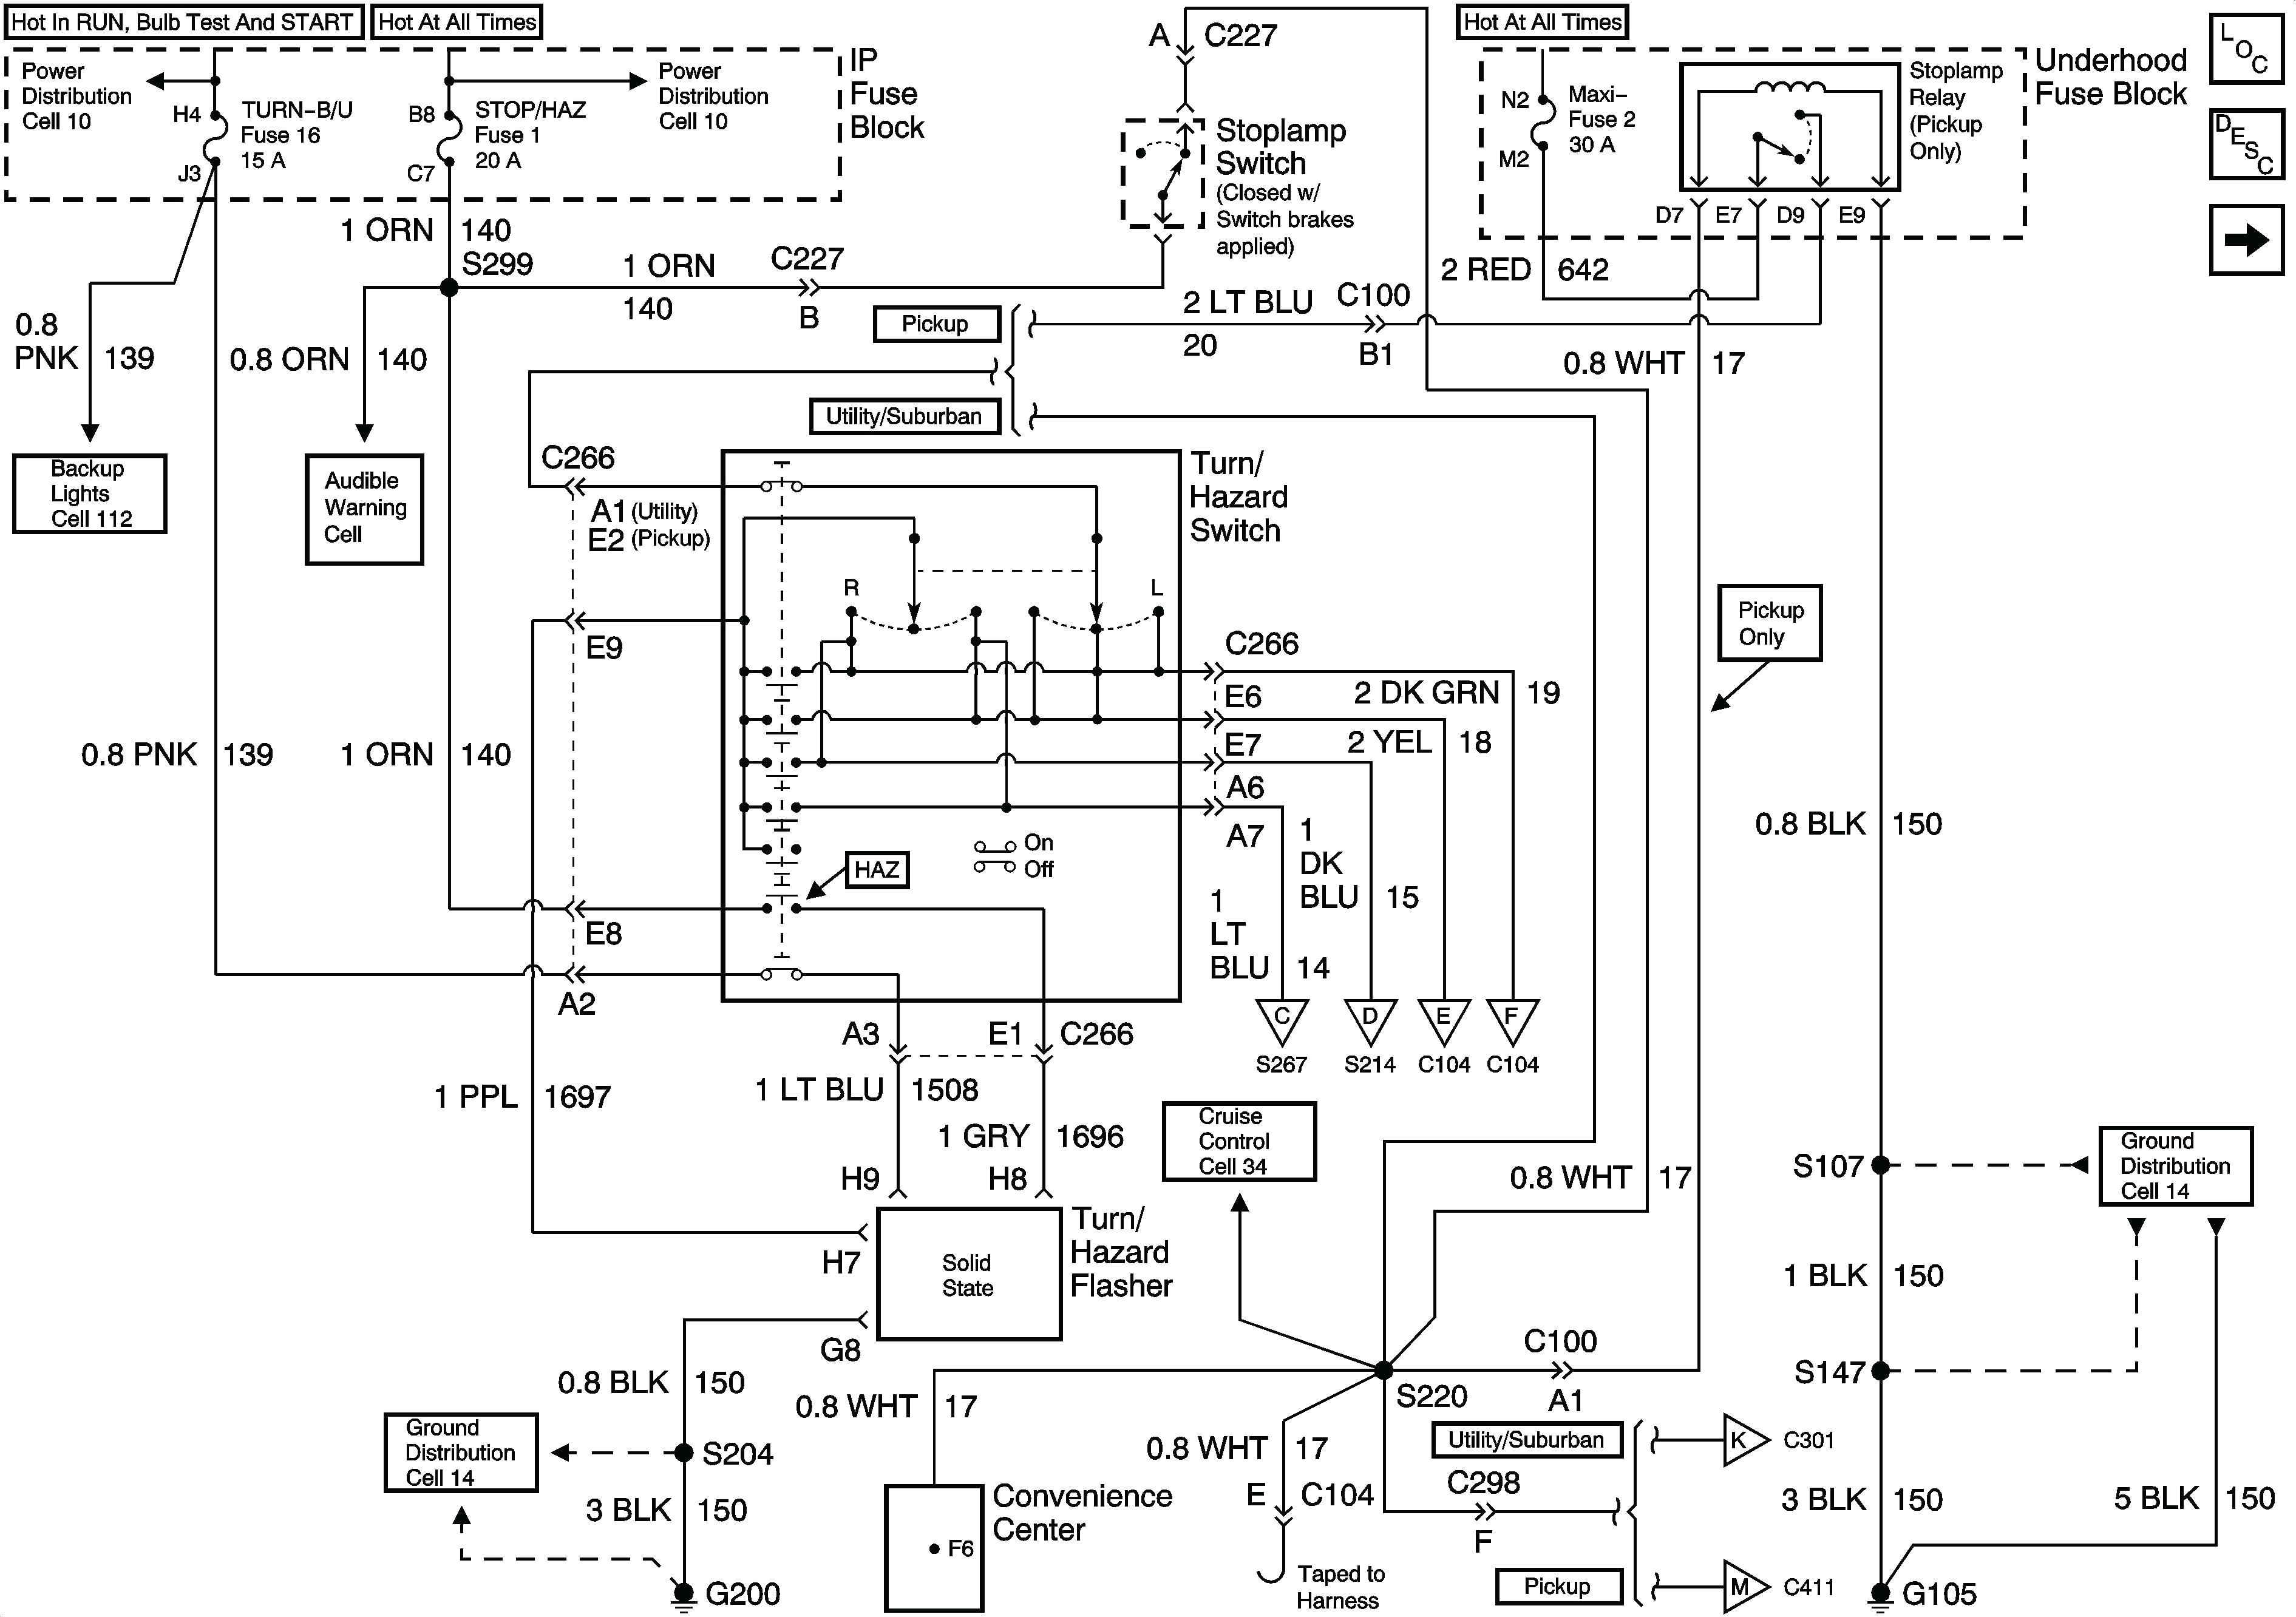 2004 nissan maxima stereo wiring diagram new 2002 nissan altima wiring harness diagram nissan wiring diagrams of 2004 nissan maxima stereo wiring diagram jpg